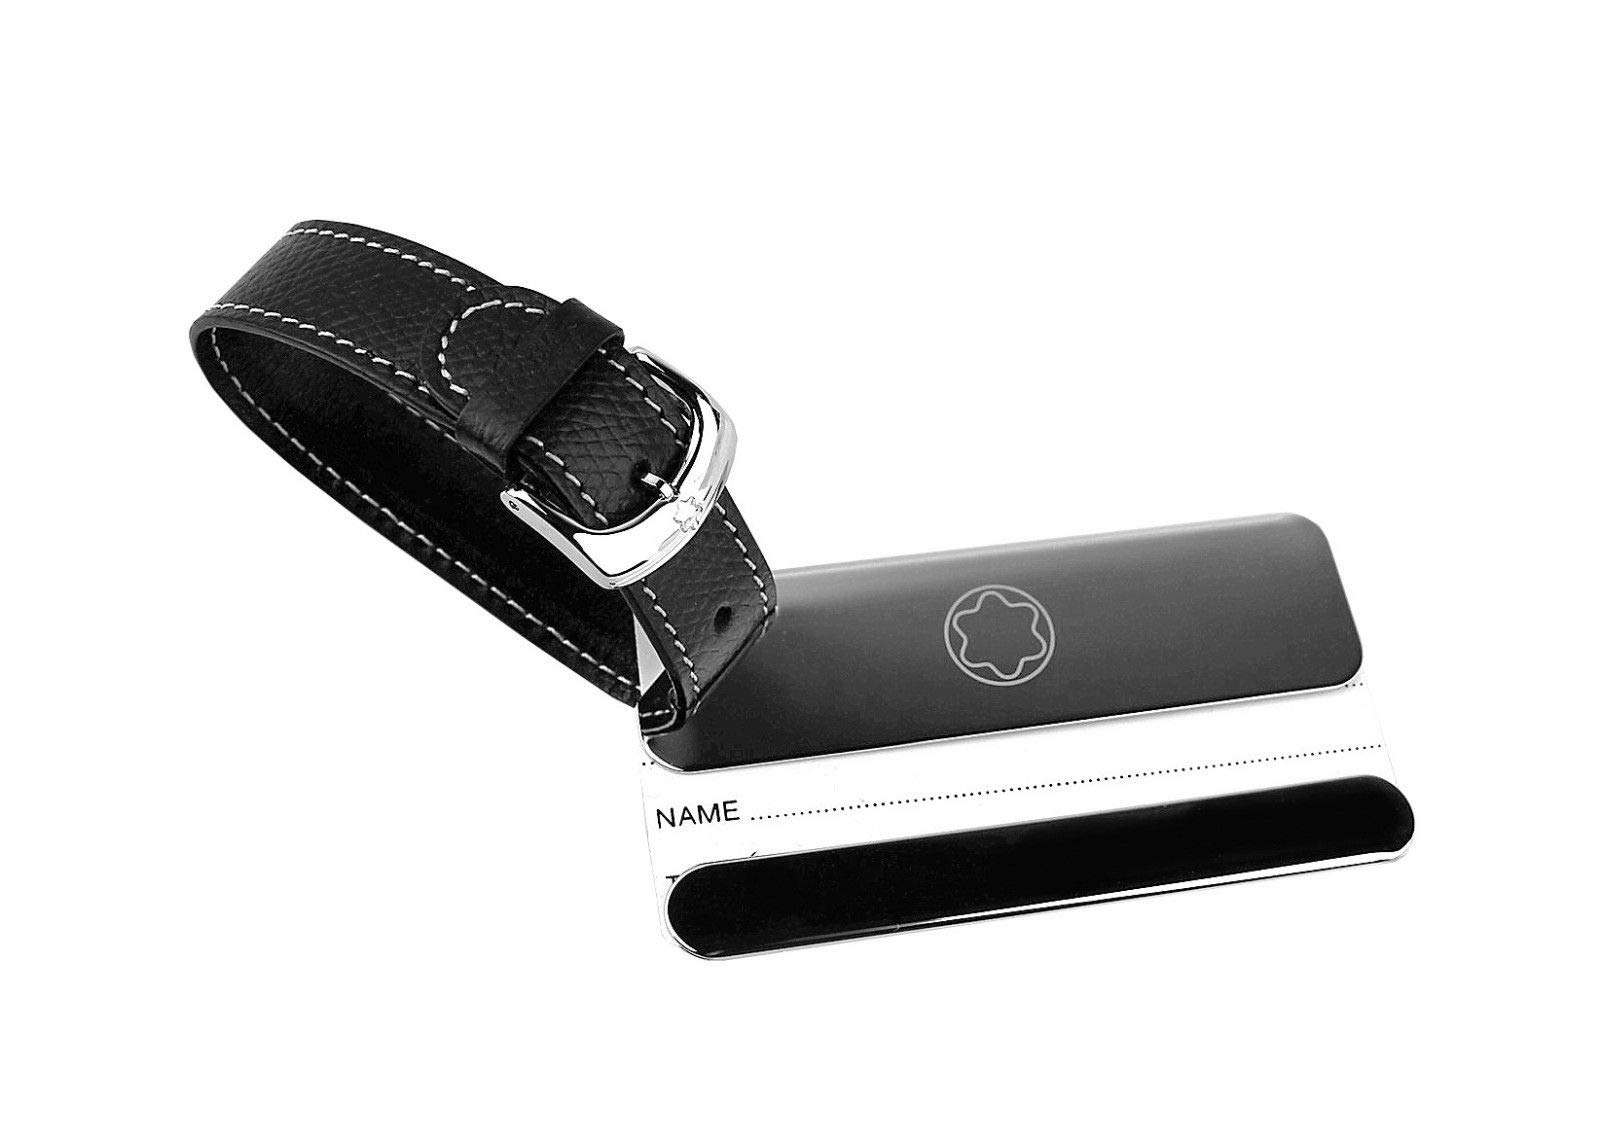 MONTBLANC LIFESTYLE ACCESSORIES LUGGAGE TAG STEEL & LEATHER 113726 GERMANY by MONTBLANC